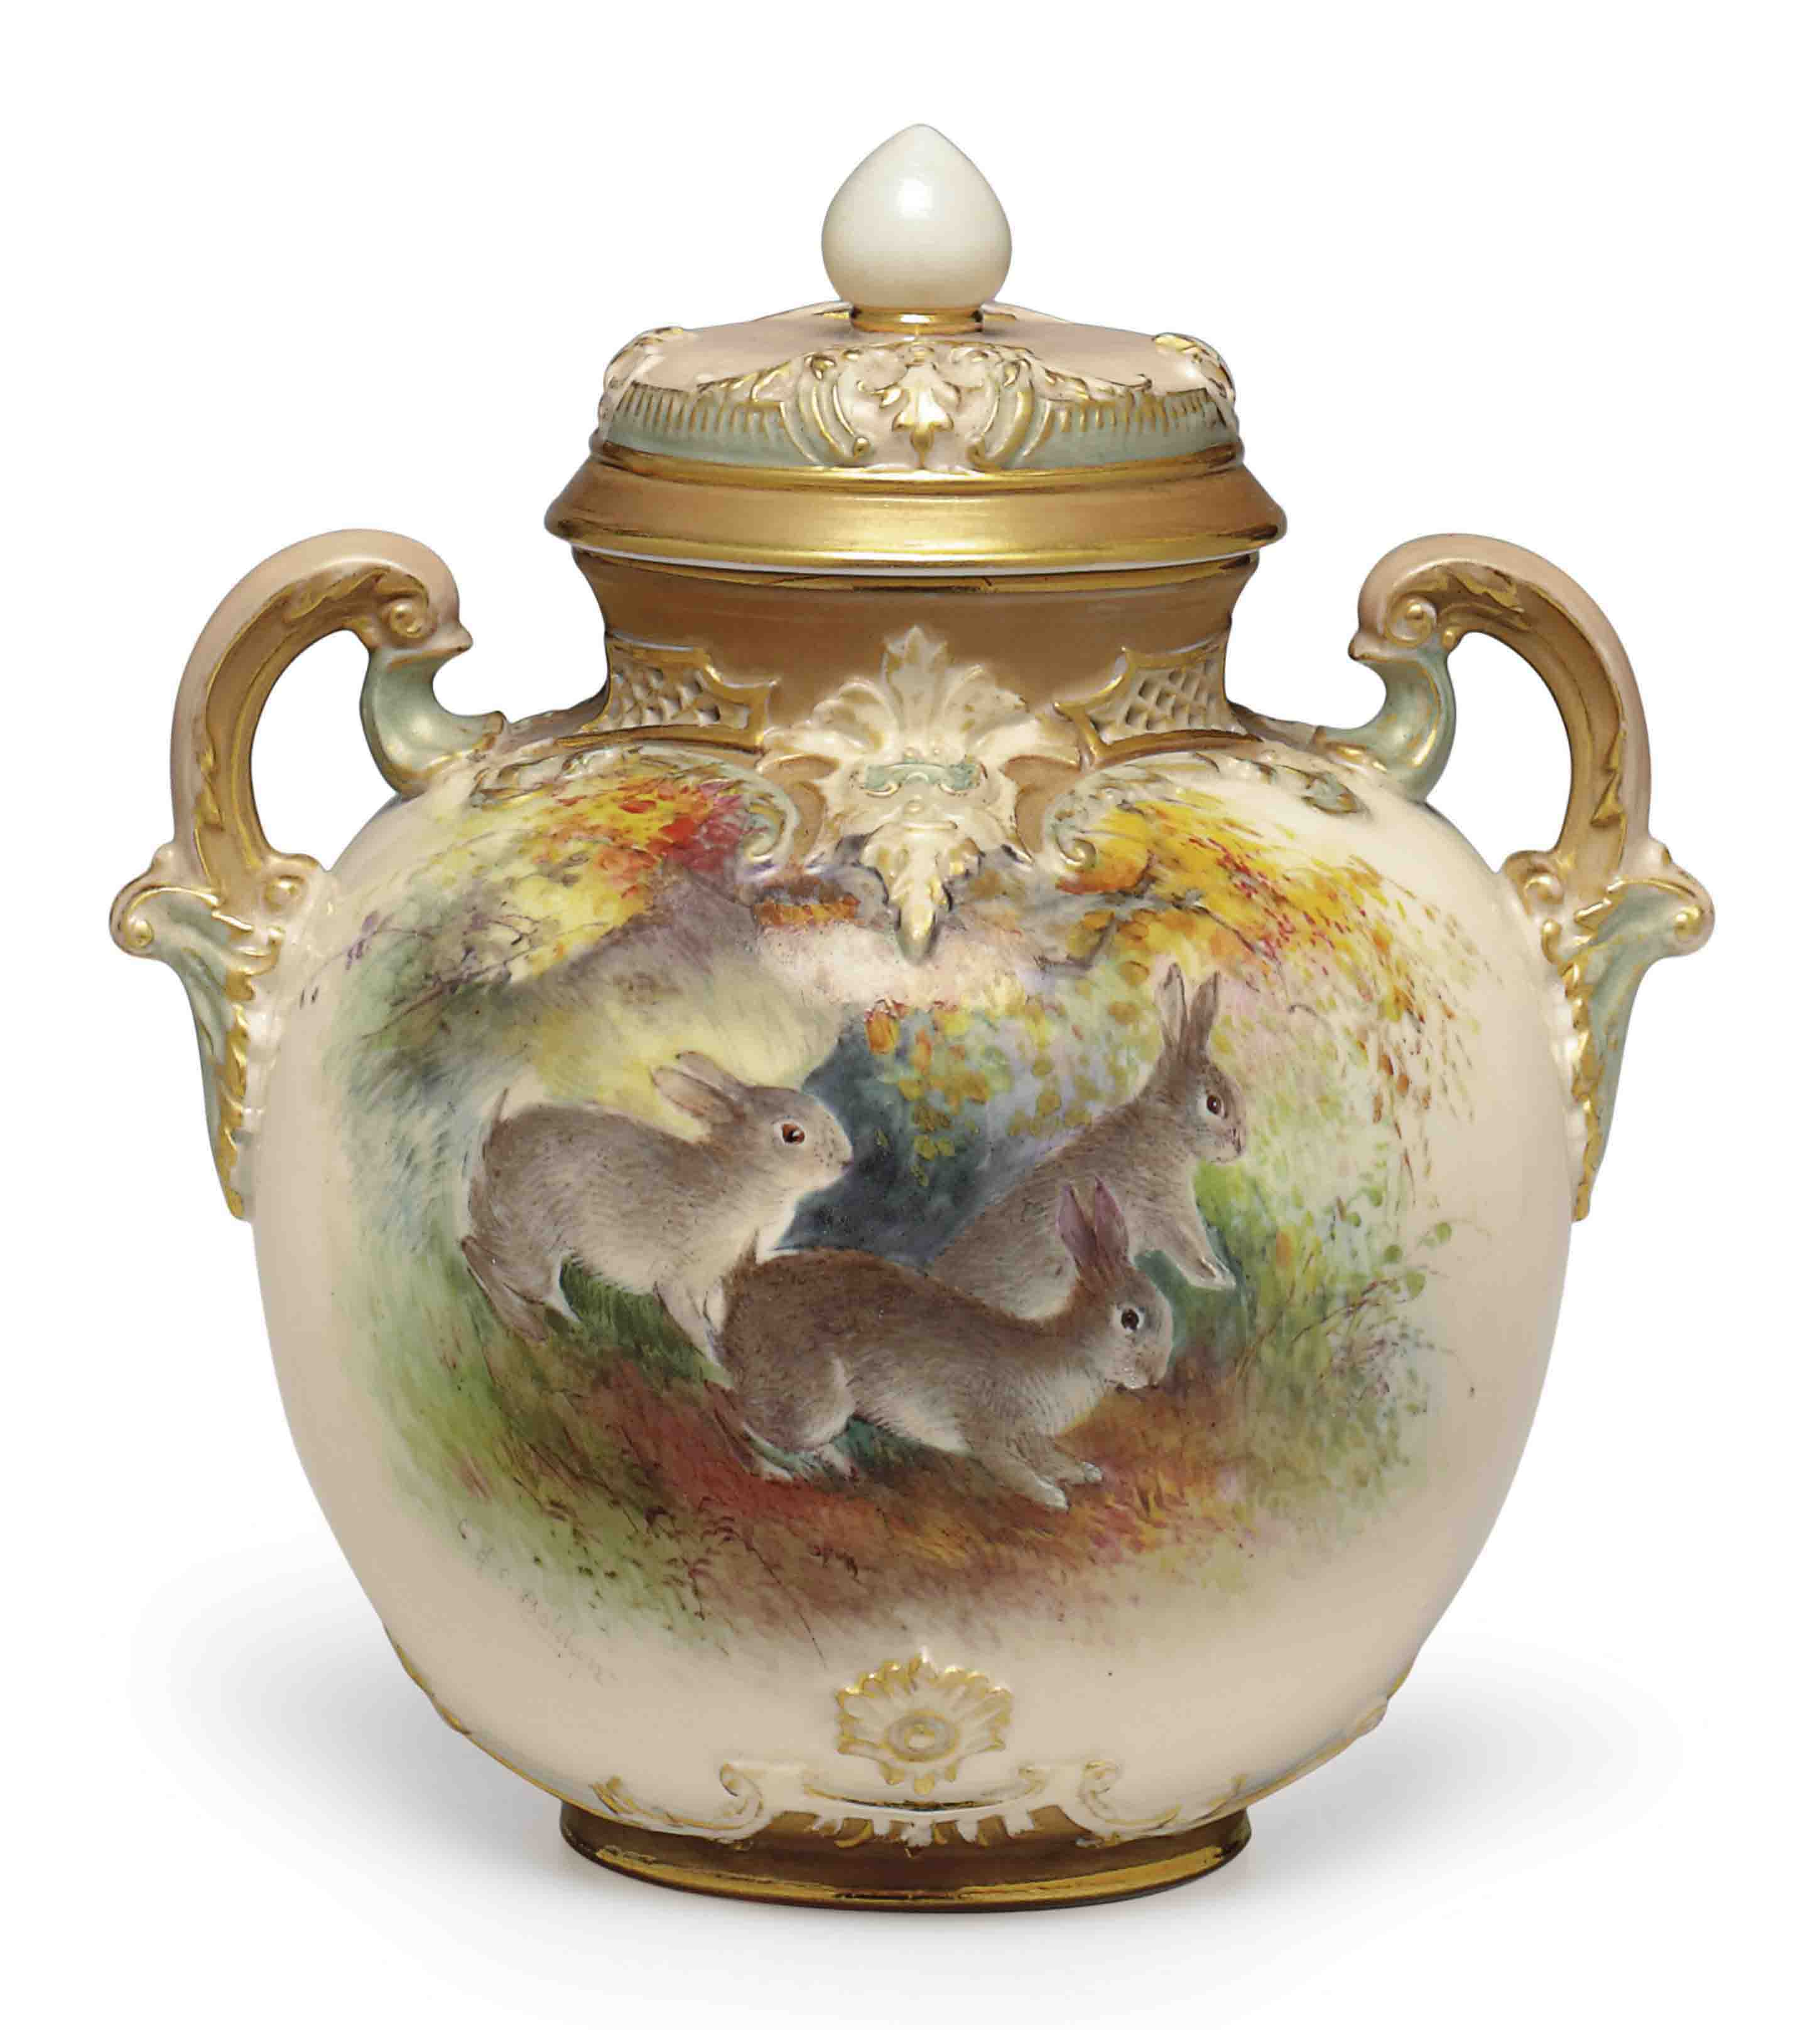 Dating royal worcester